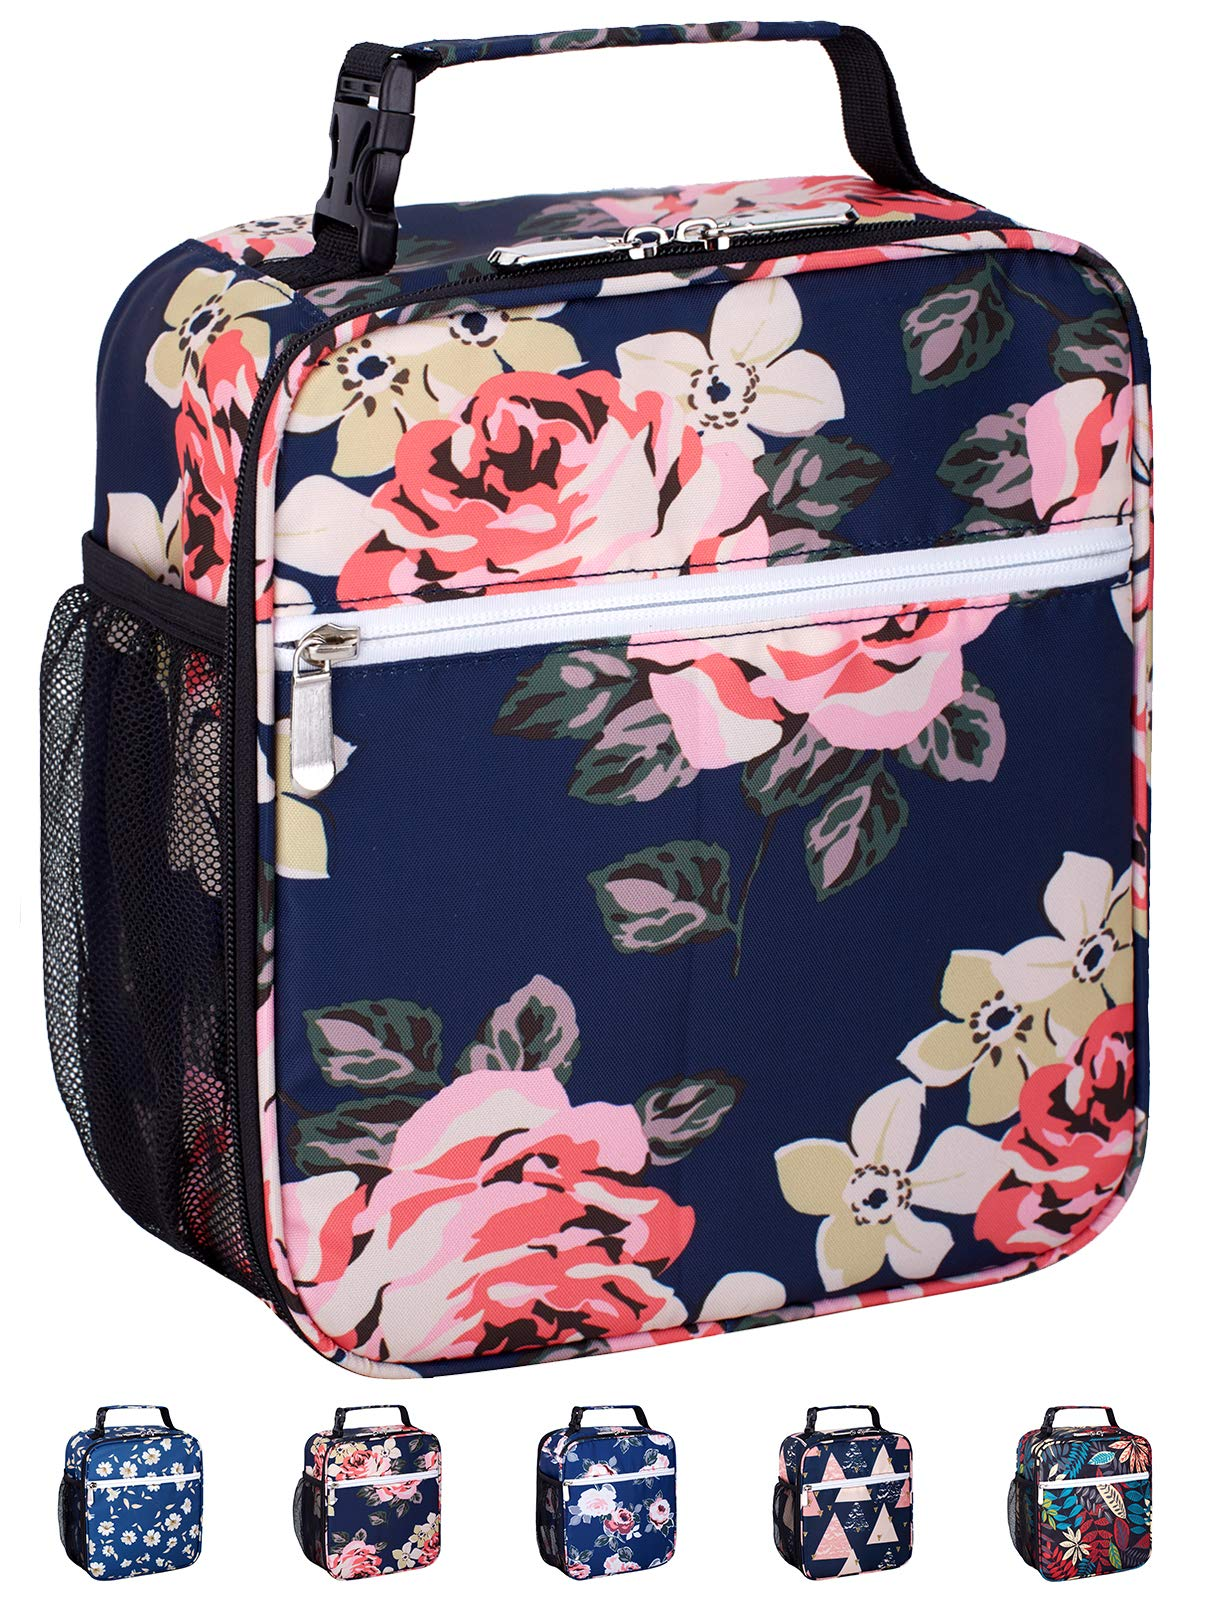 Leakproof Insulated Reusable Cooler Lunch Bag - Durable Compact Office Work School Lunch Box with Multi-Pockets & Detachable Buckle Handle for Women,Men and Kids-Big Blue Peony by Venture Pal